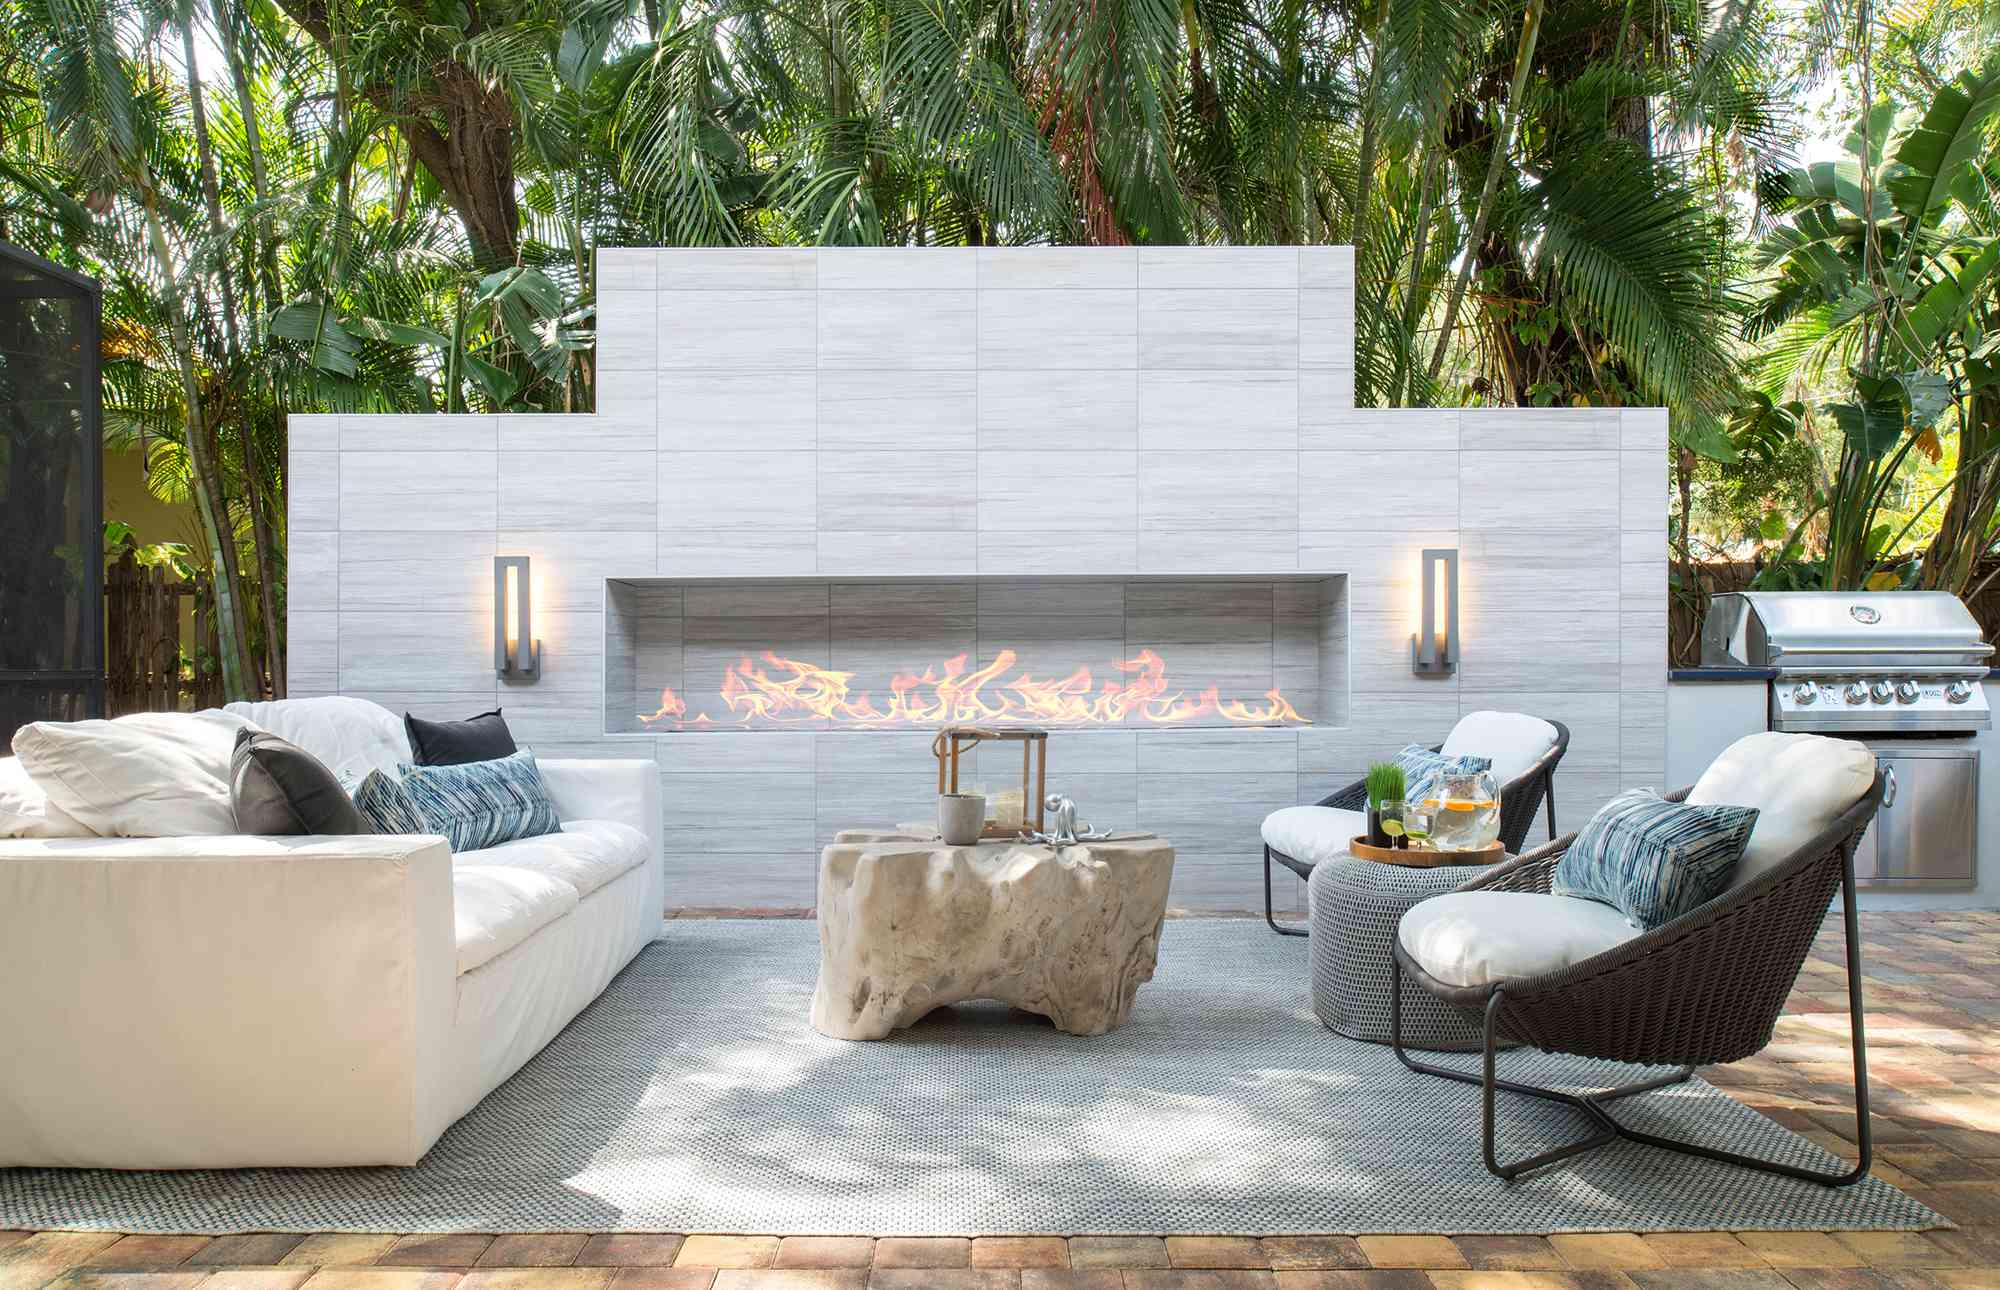 Sire Design outdoor fireplace.